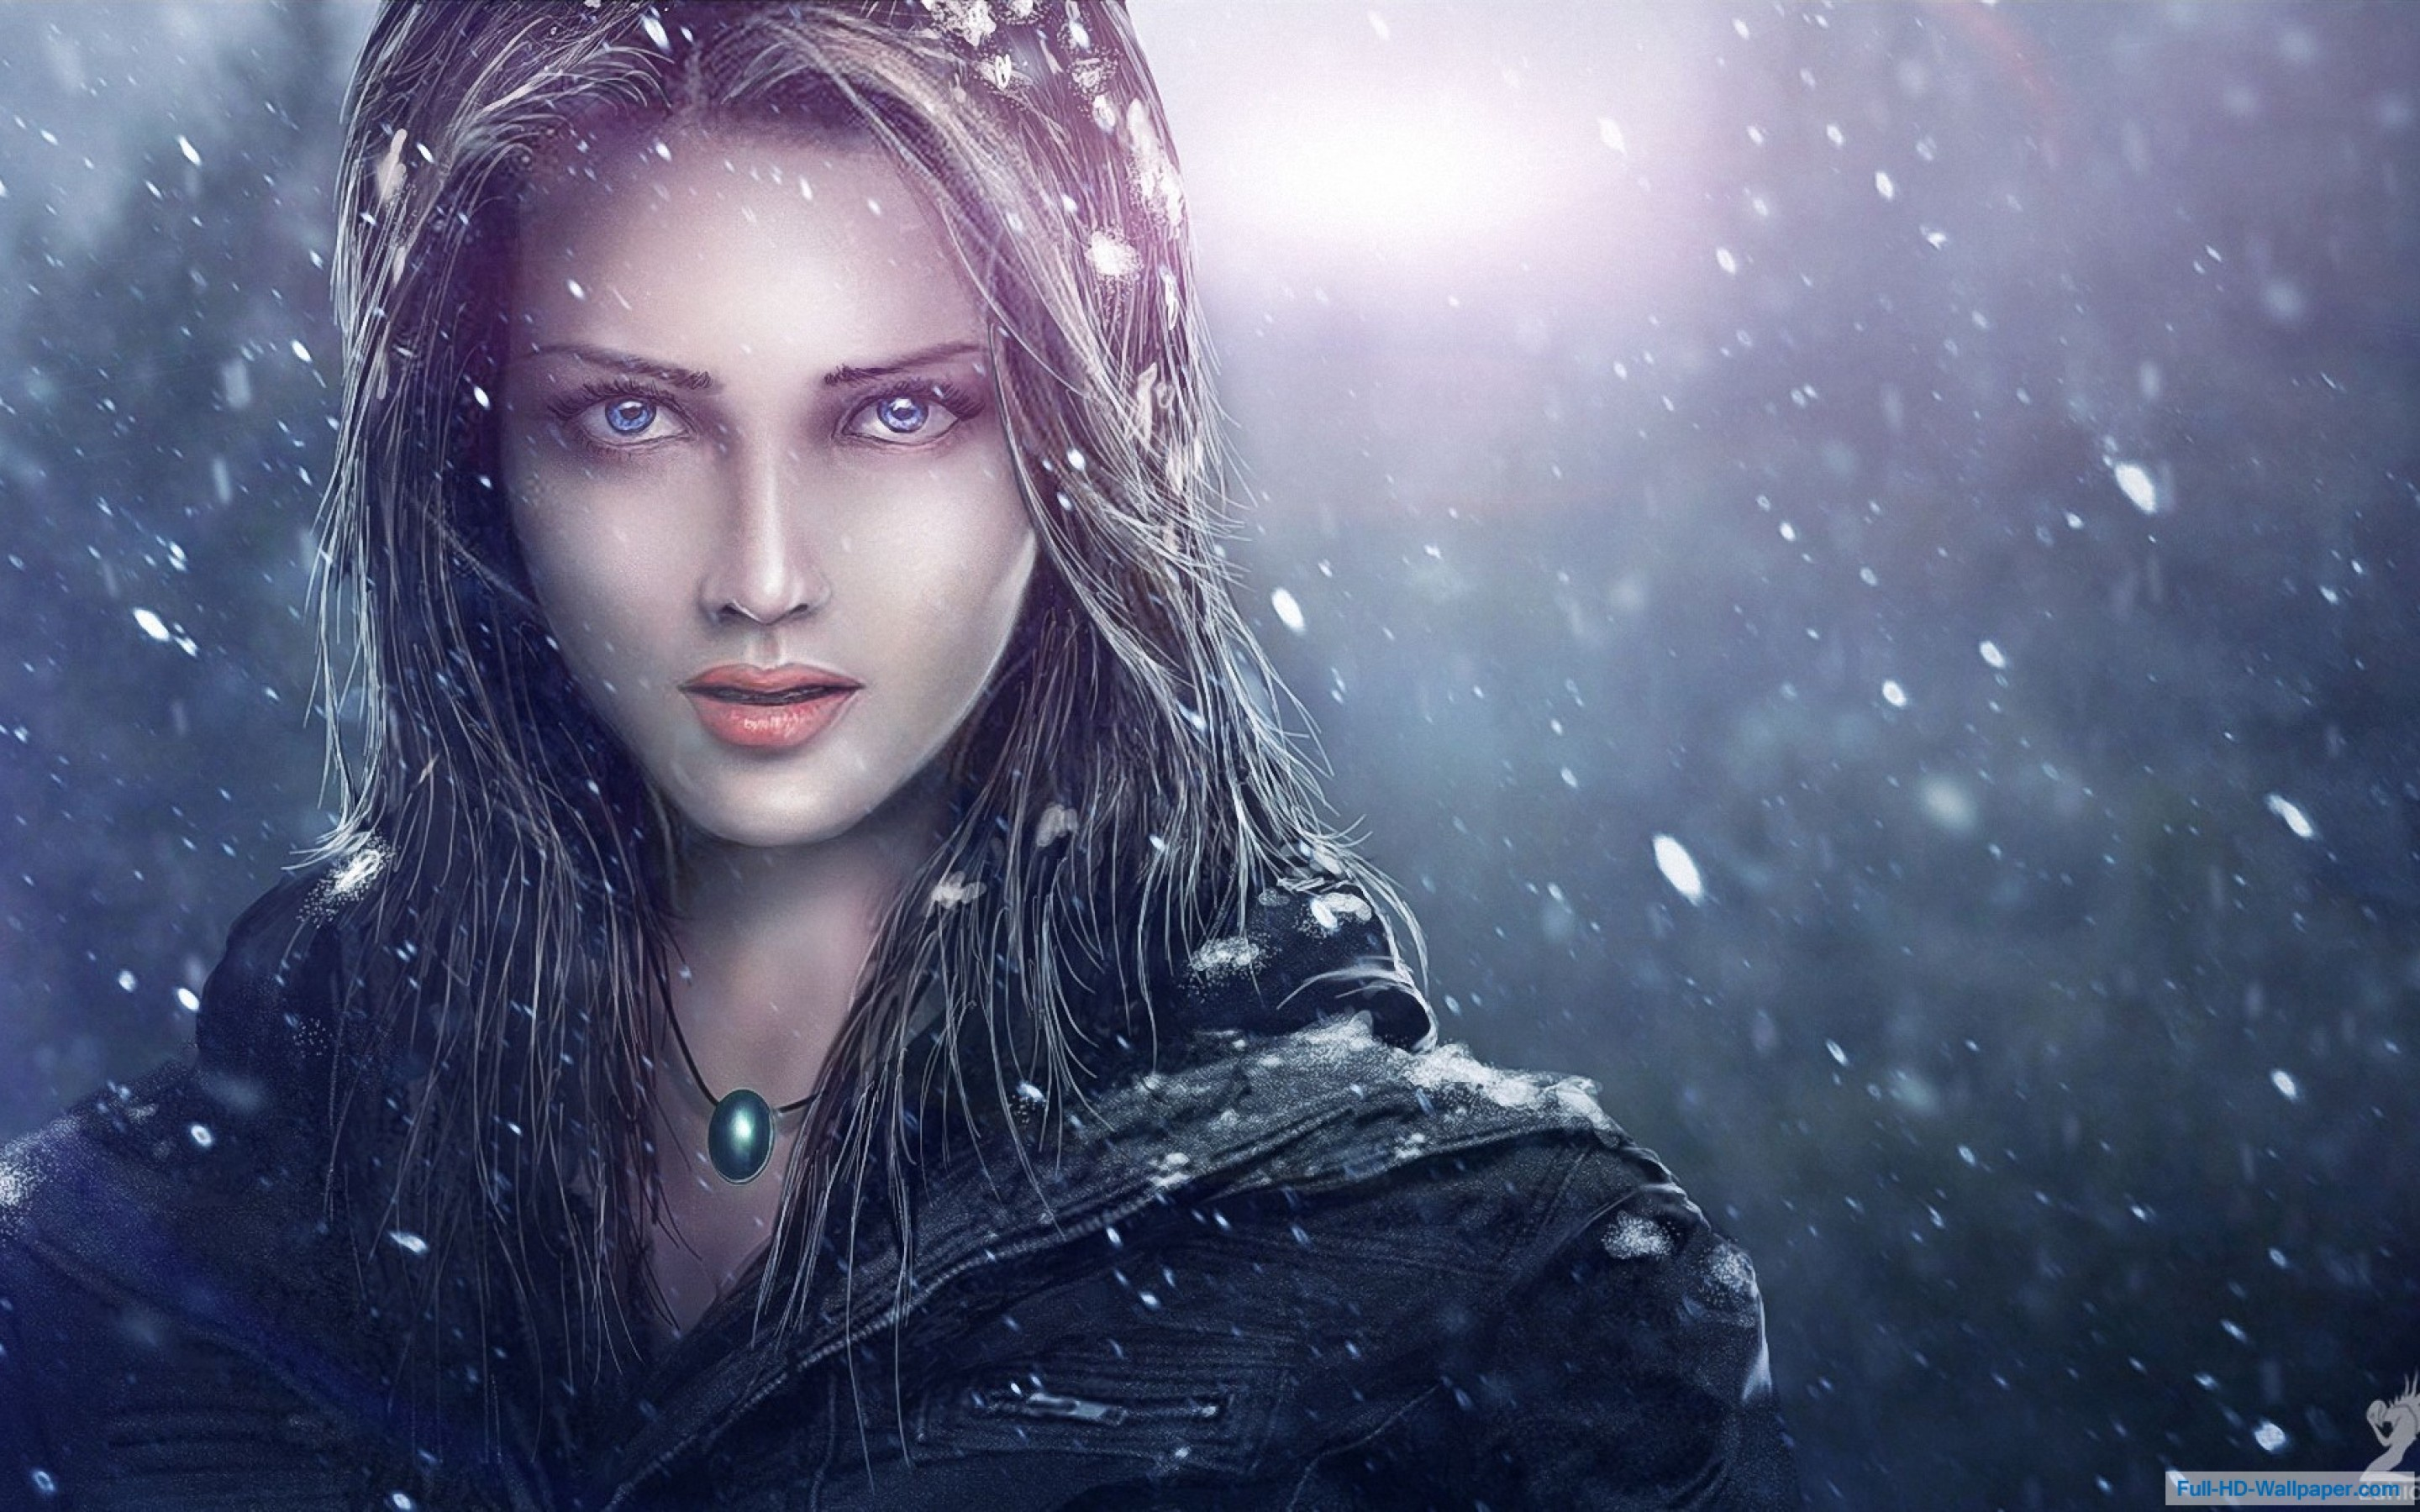 2880x1800 ... Fantasy Women Wallpapers HD Widescreen, 26 Fantasy Women .